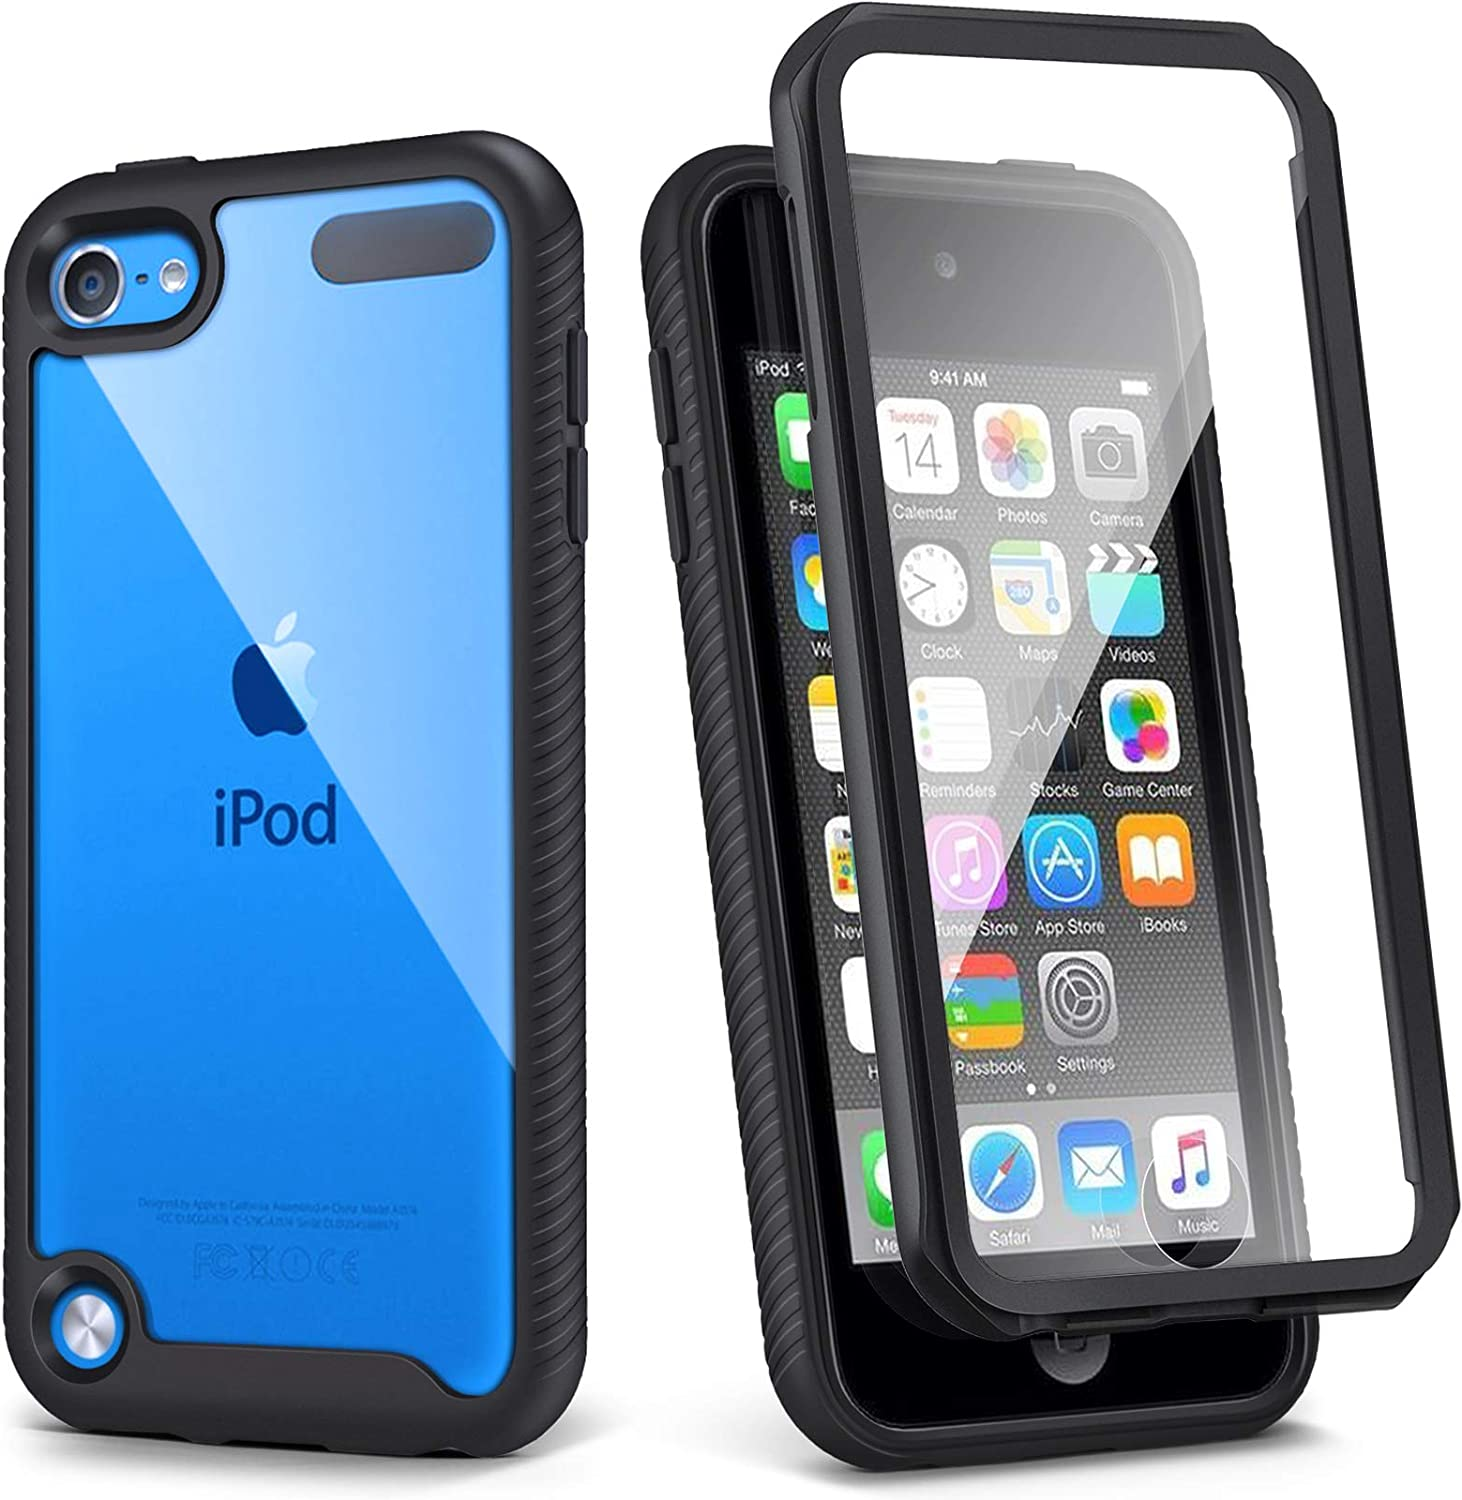 iPod Touch 7th Generation Case, IDweel Armor Shockproof Case Build in Screen Protector Heavy Duty Full Protection Shock Resistant Hybrid Rugged Cover for Apple iPod Touch 5/6/7th Generation, Black